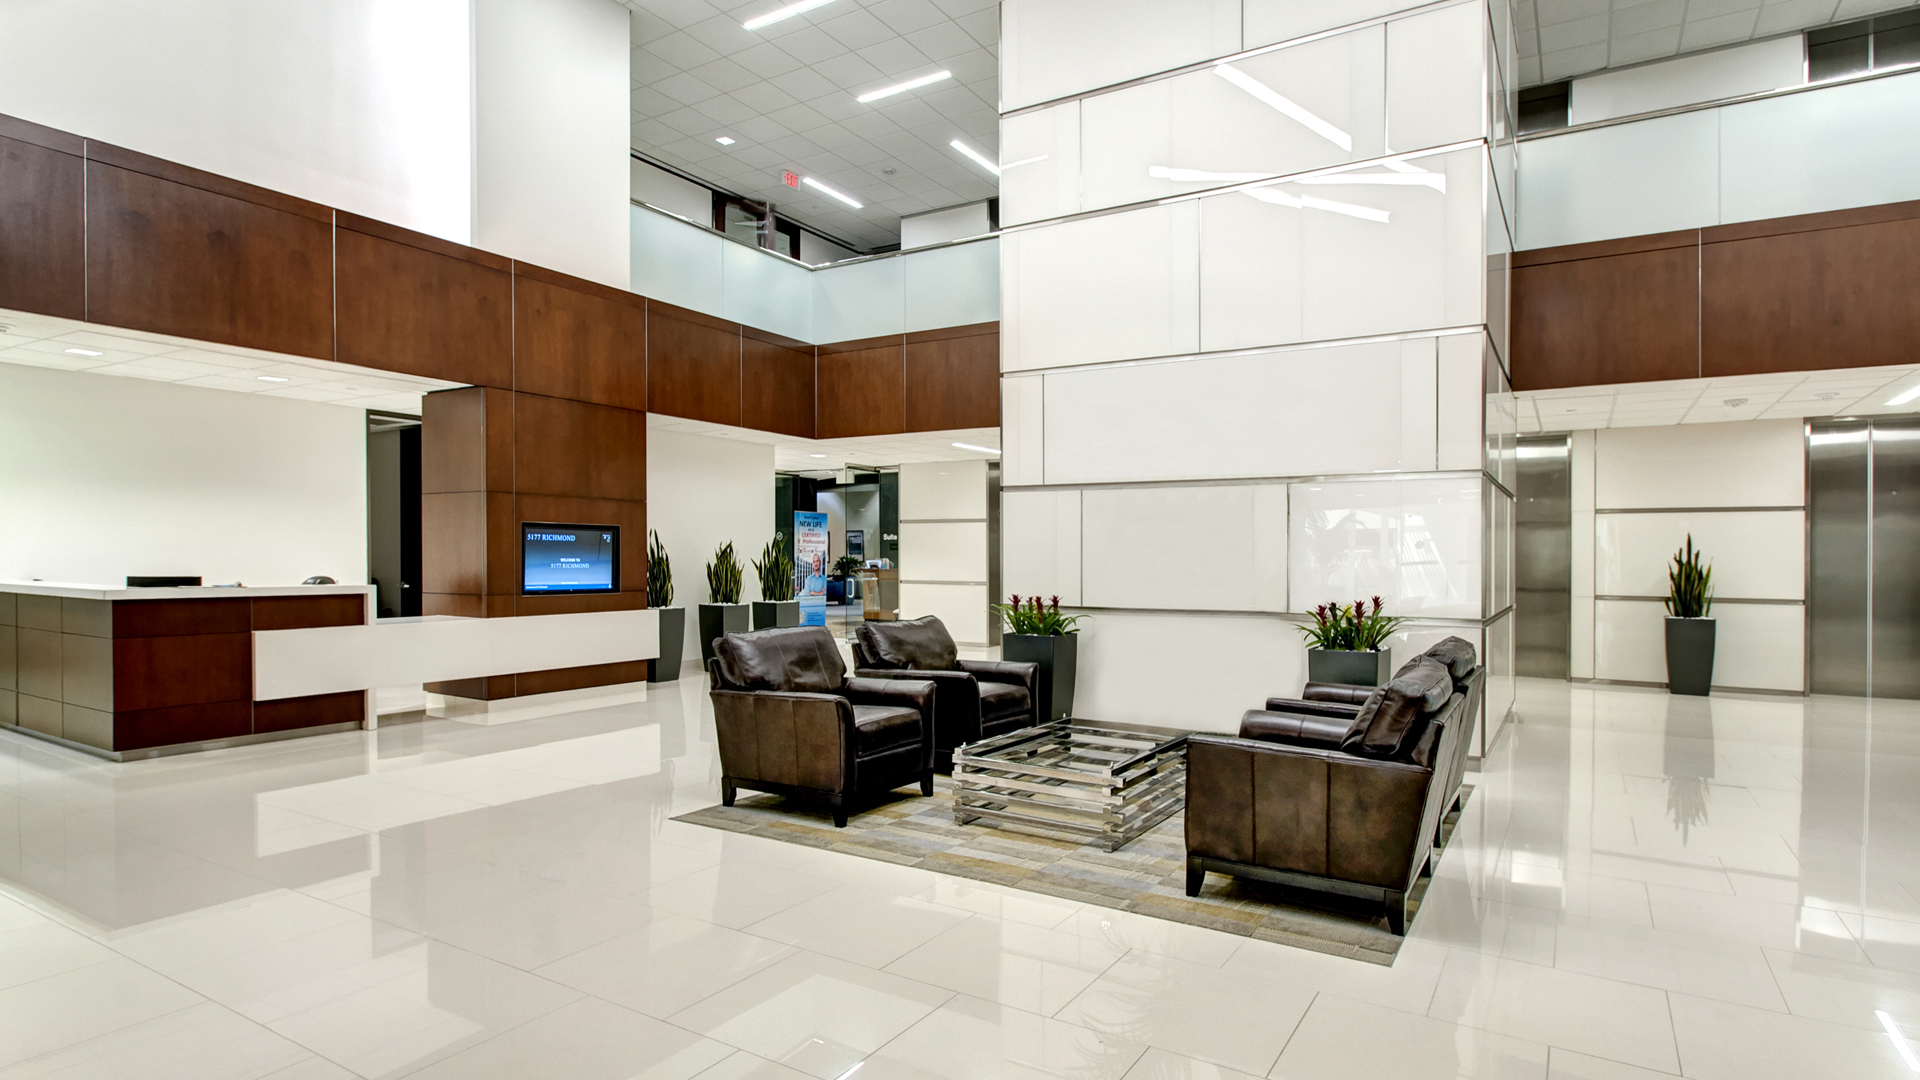 Building Repositioning Refurbishment 5177 Richmond Ave Houston Concierge Seating Area Lobby